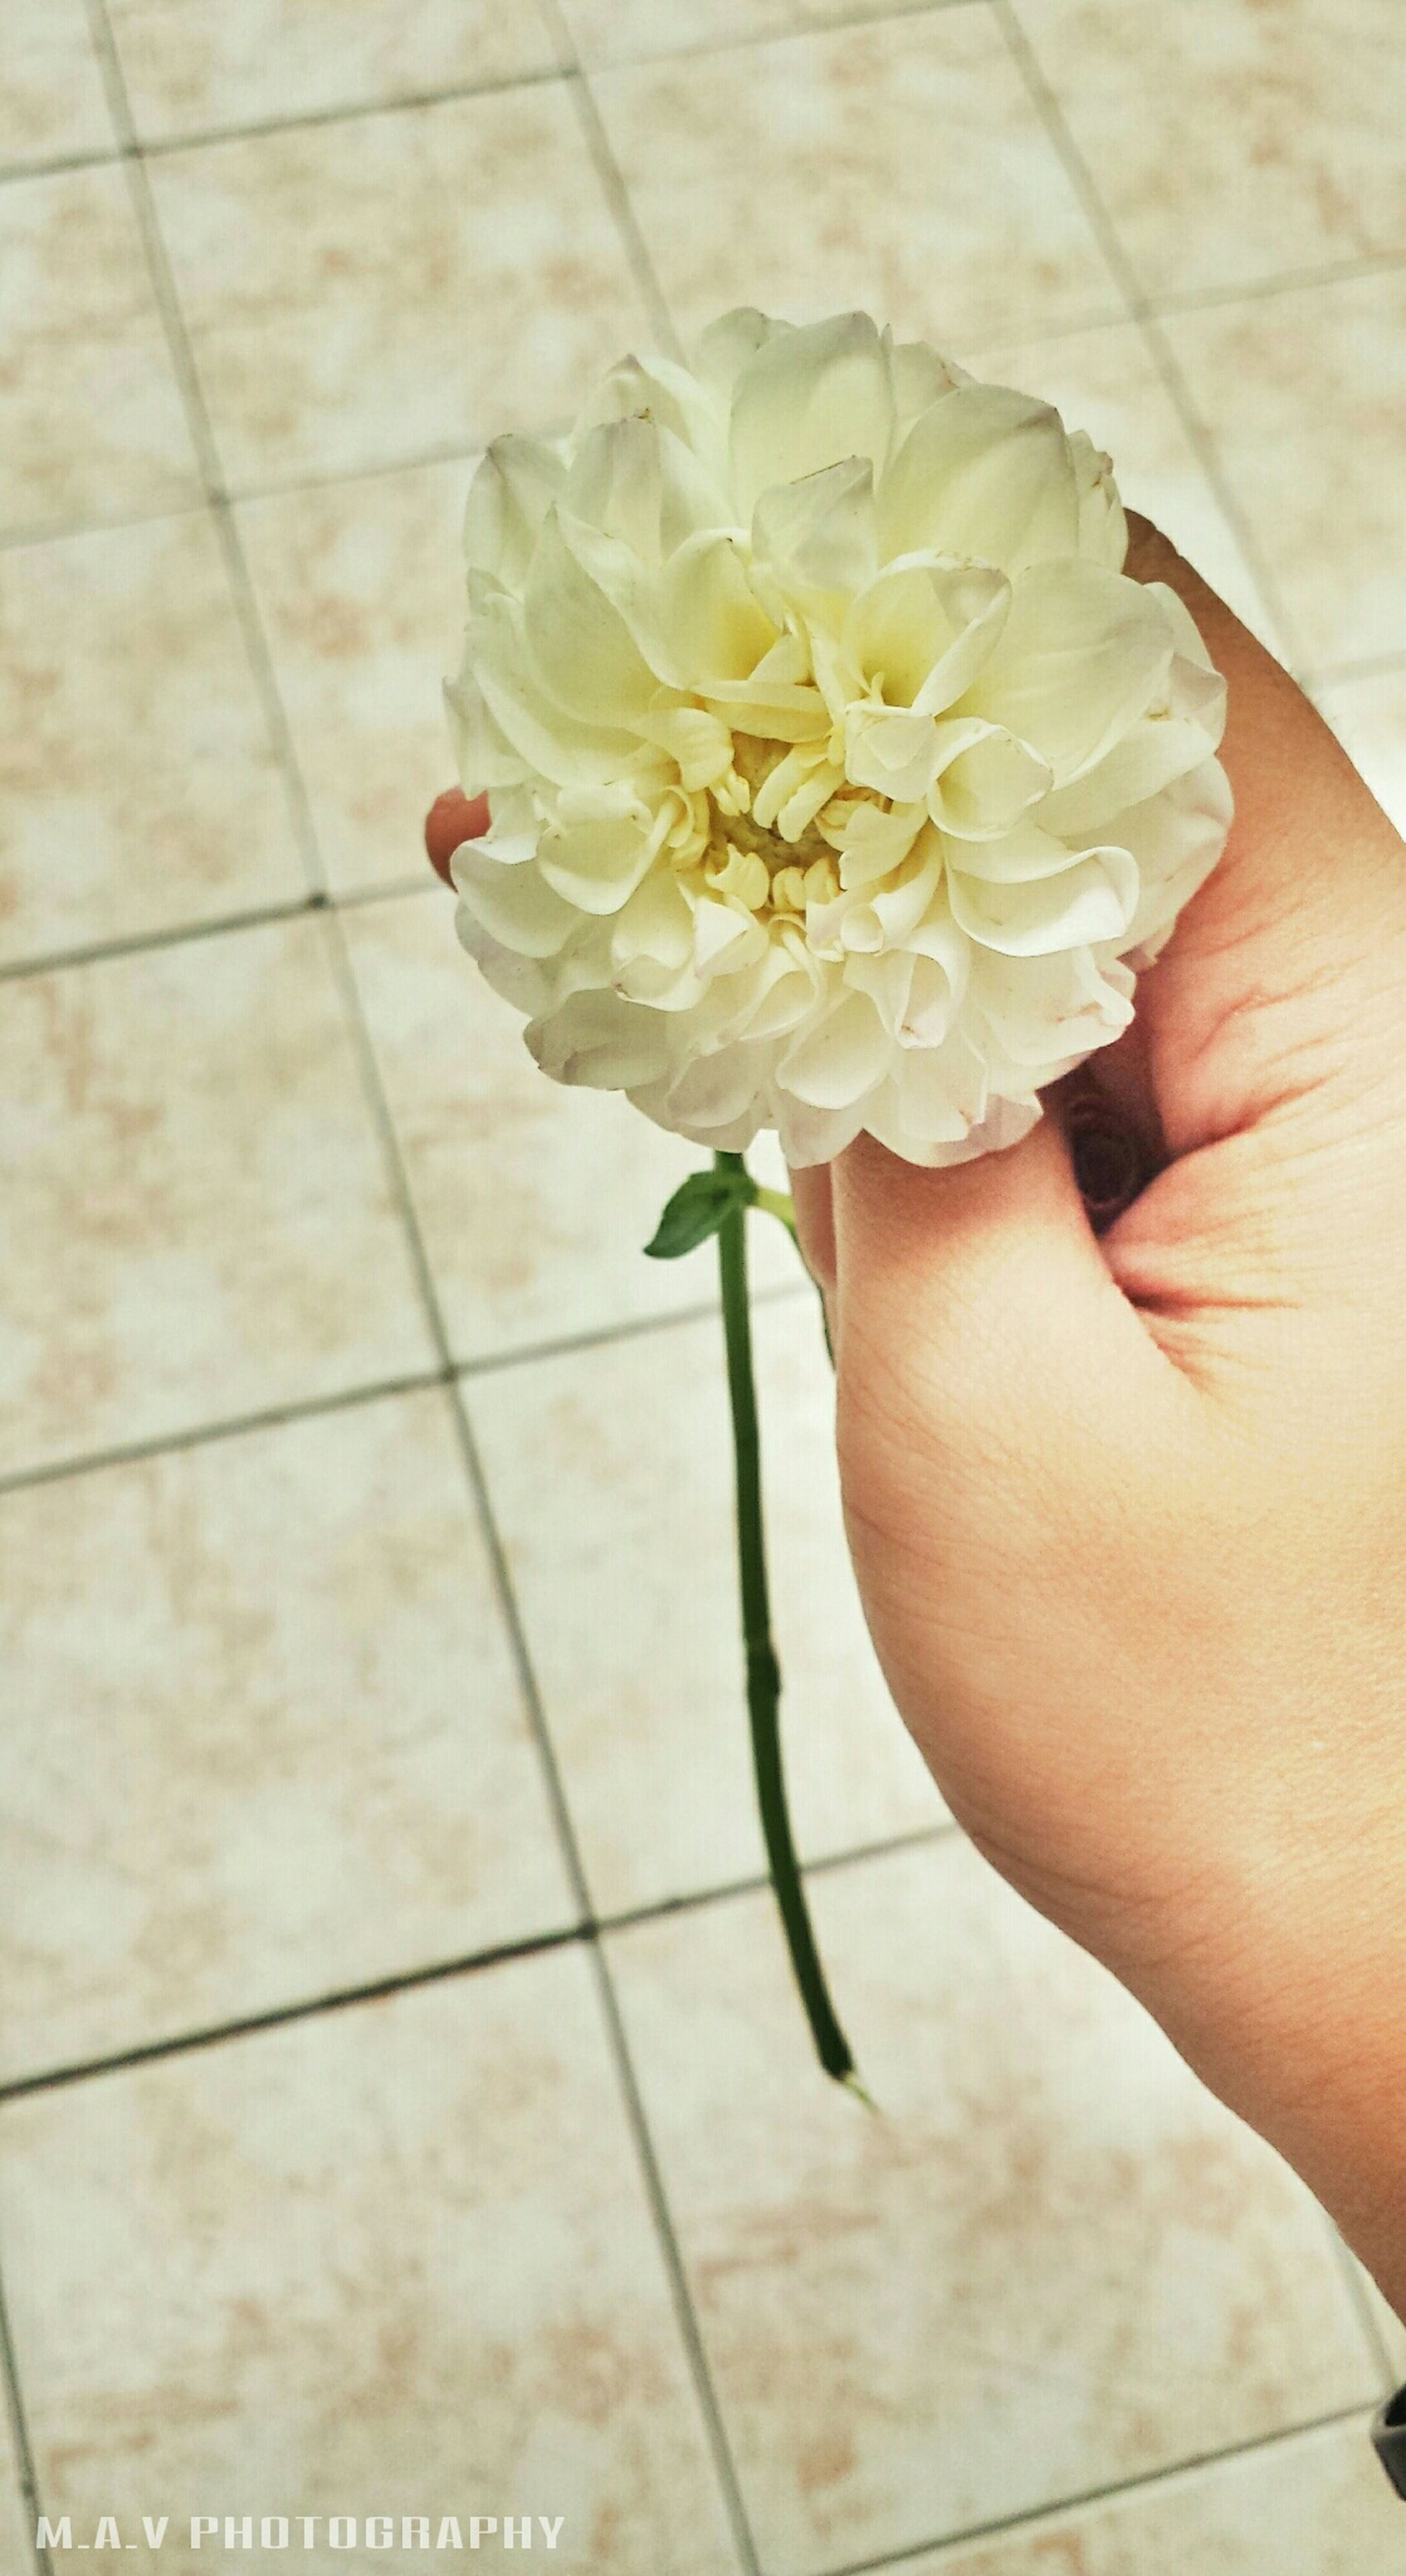 person, flower, holding, freshness, part of, petal, indoors, cropped, fragility, personal perspective, human finger, flower head, high angle view, lifestyles, unrecognizable person, leisure activity